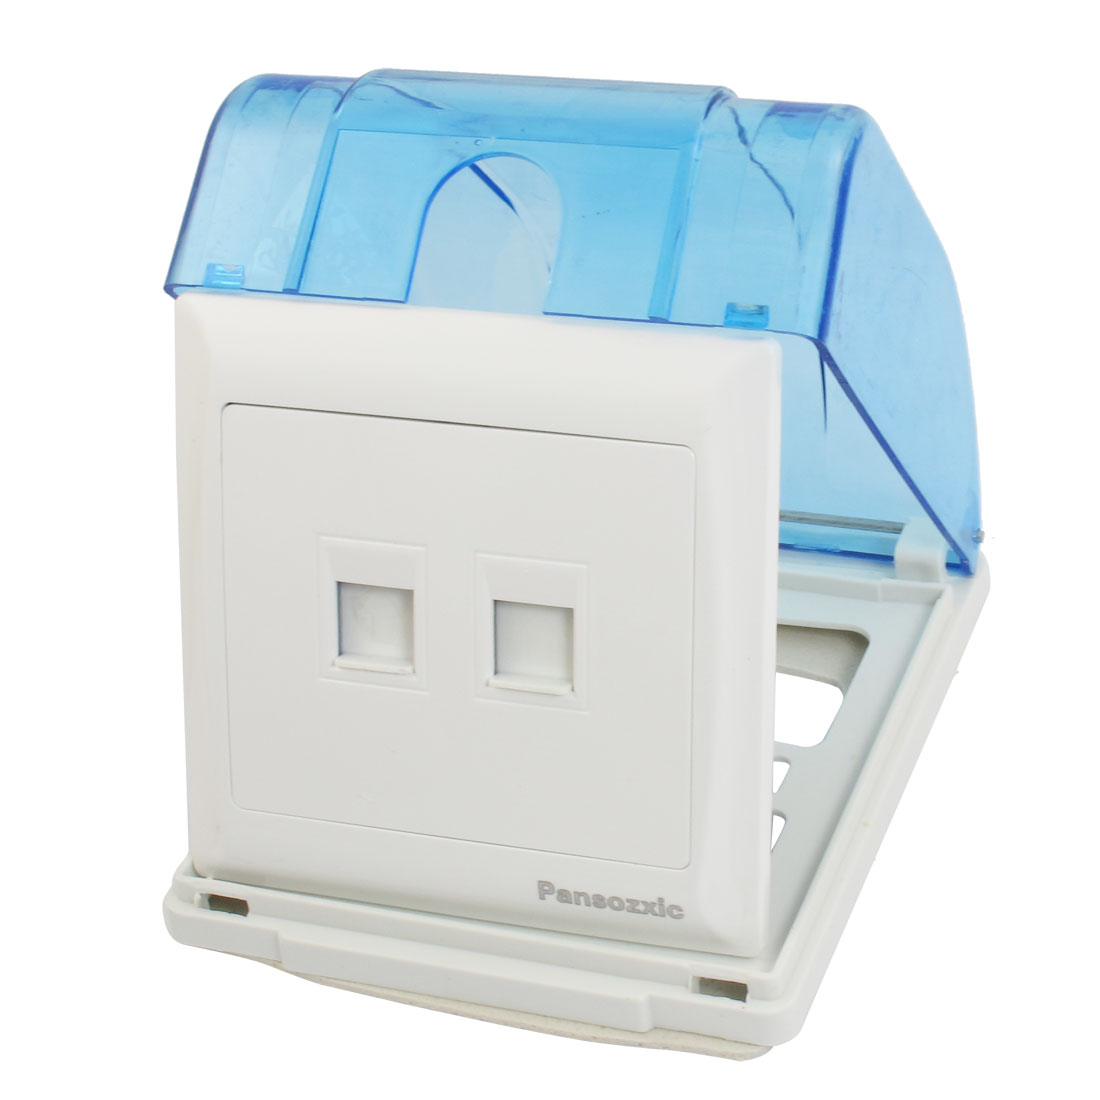 White Panel RJ45 Computer RJ11 Telephone Wall Outlet Plate w Blue Splash Proof Box